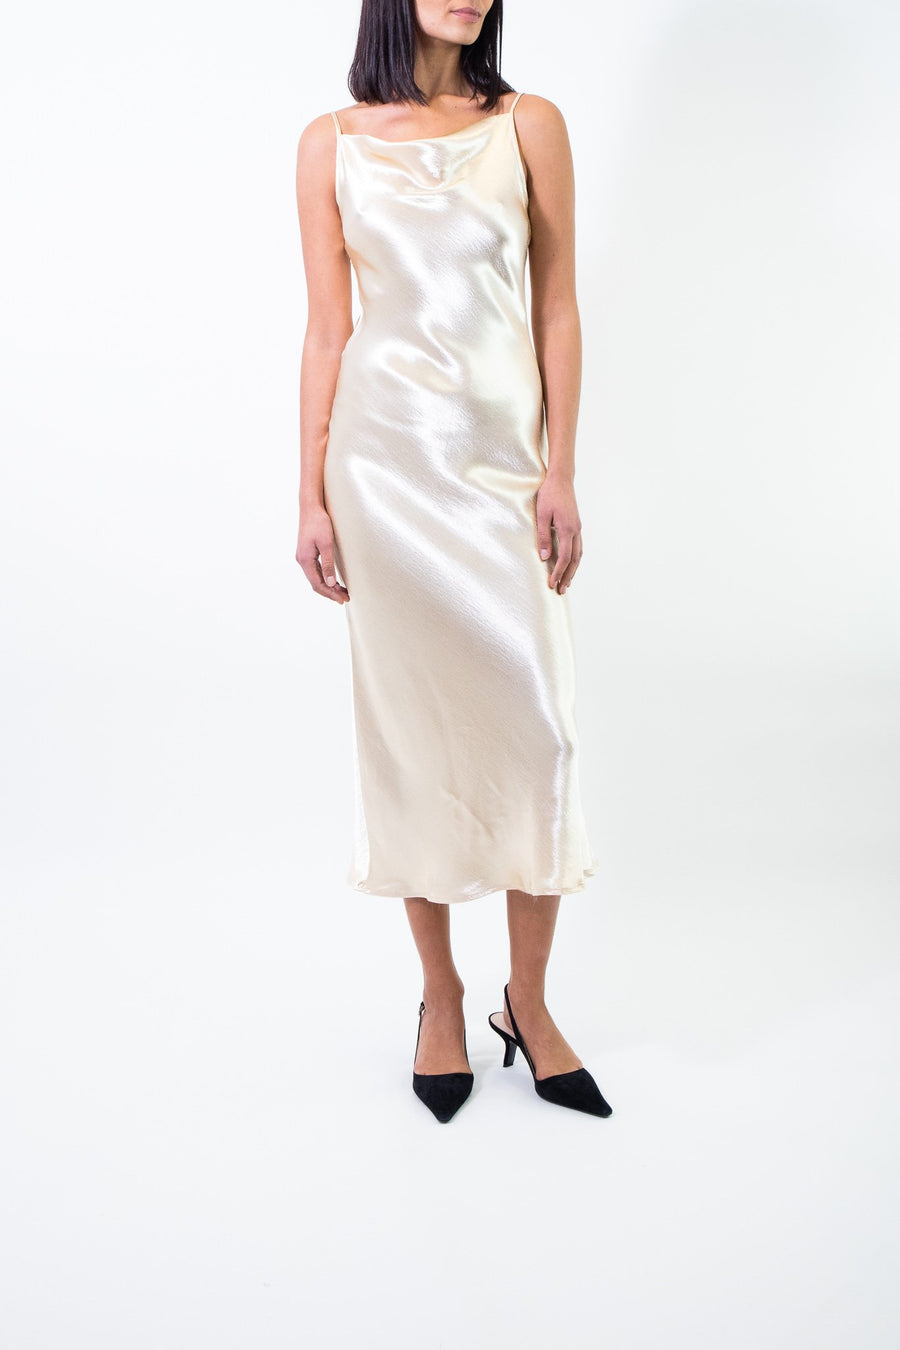 Rent Rat & Boa Lumina Metallic Slip Maxi Dress from Rotaro